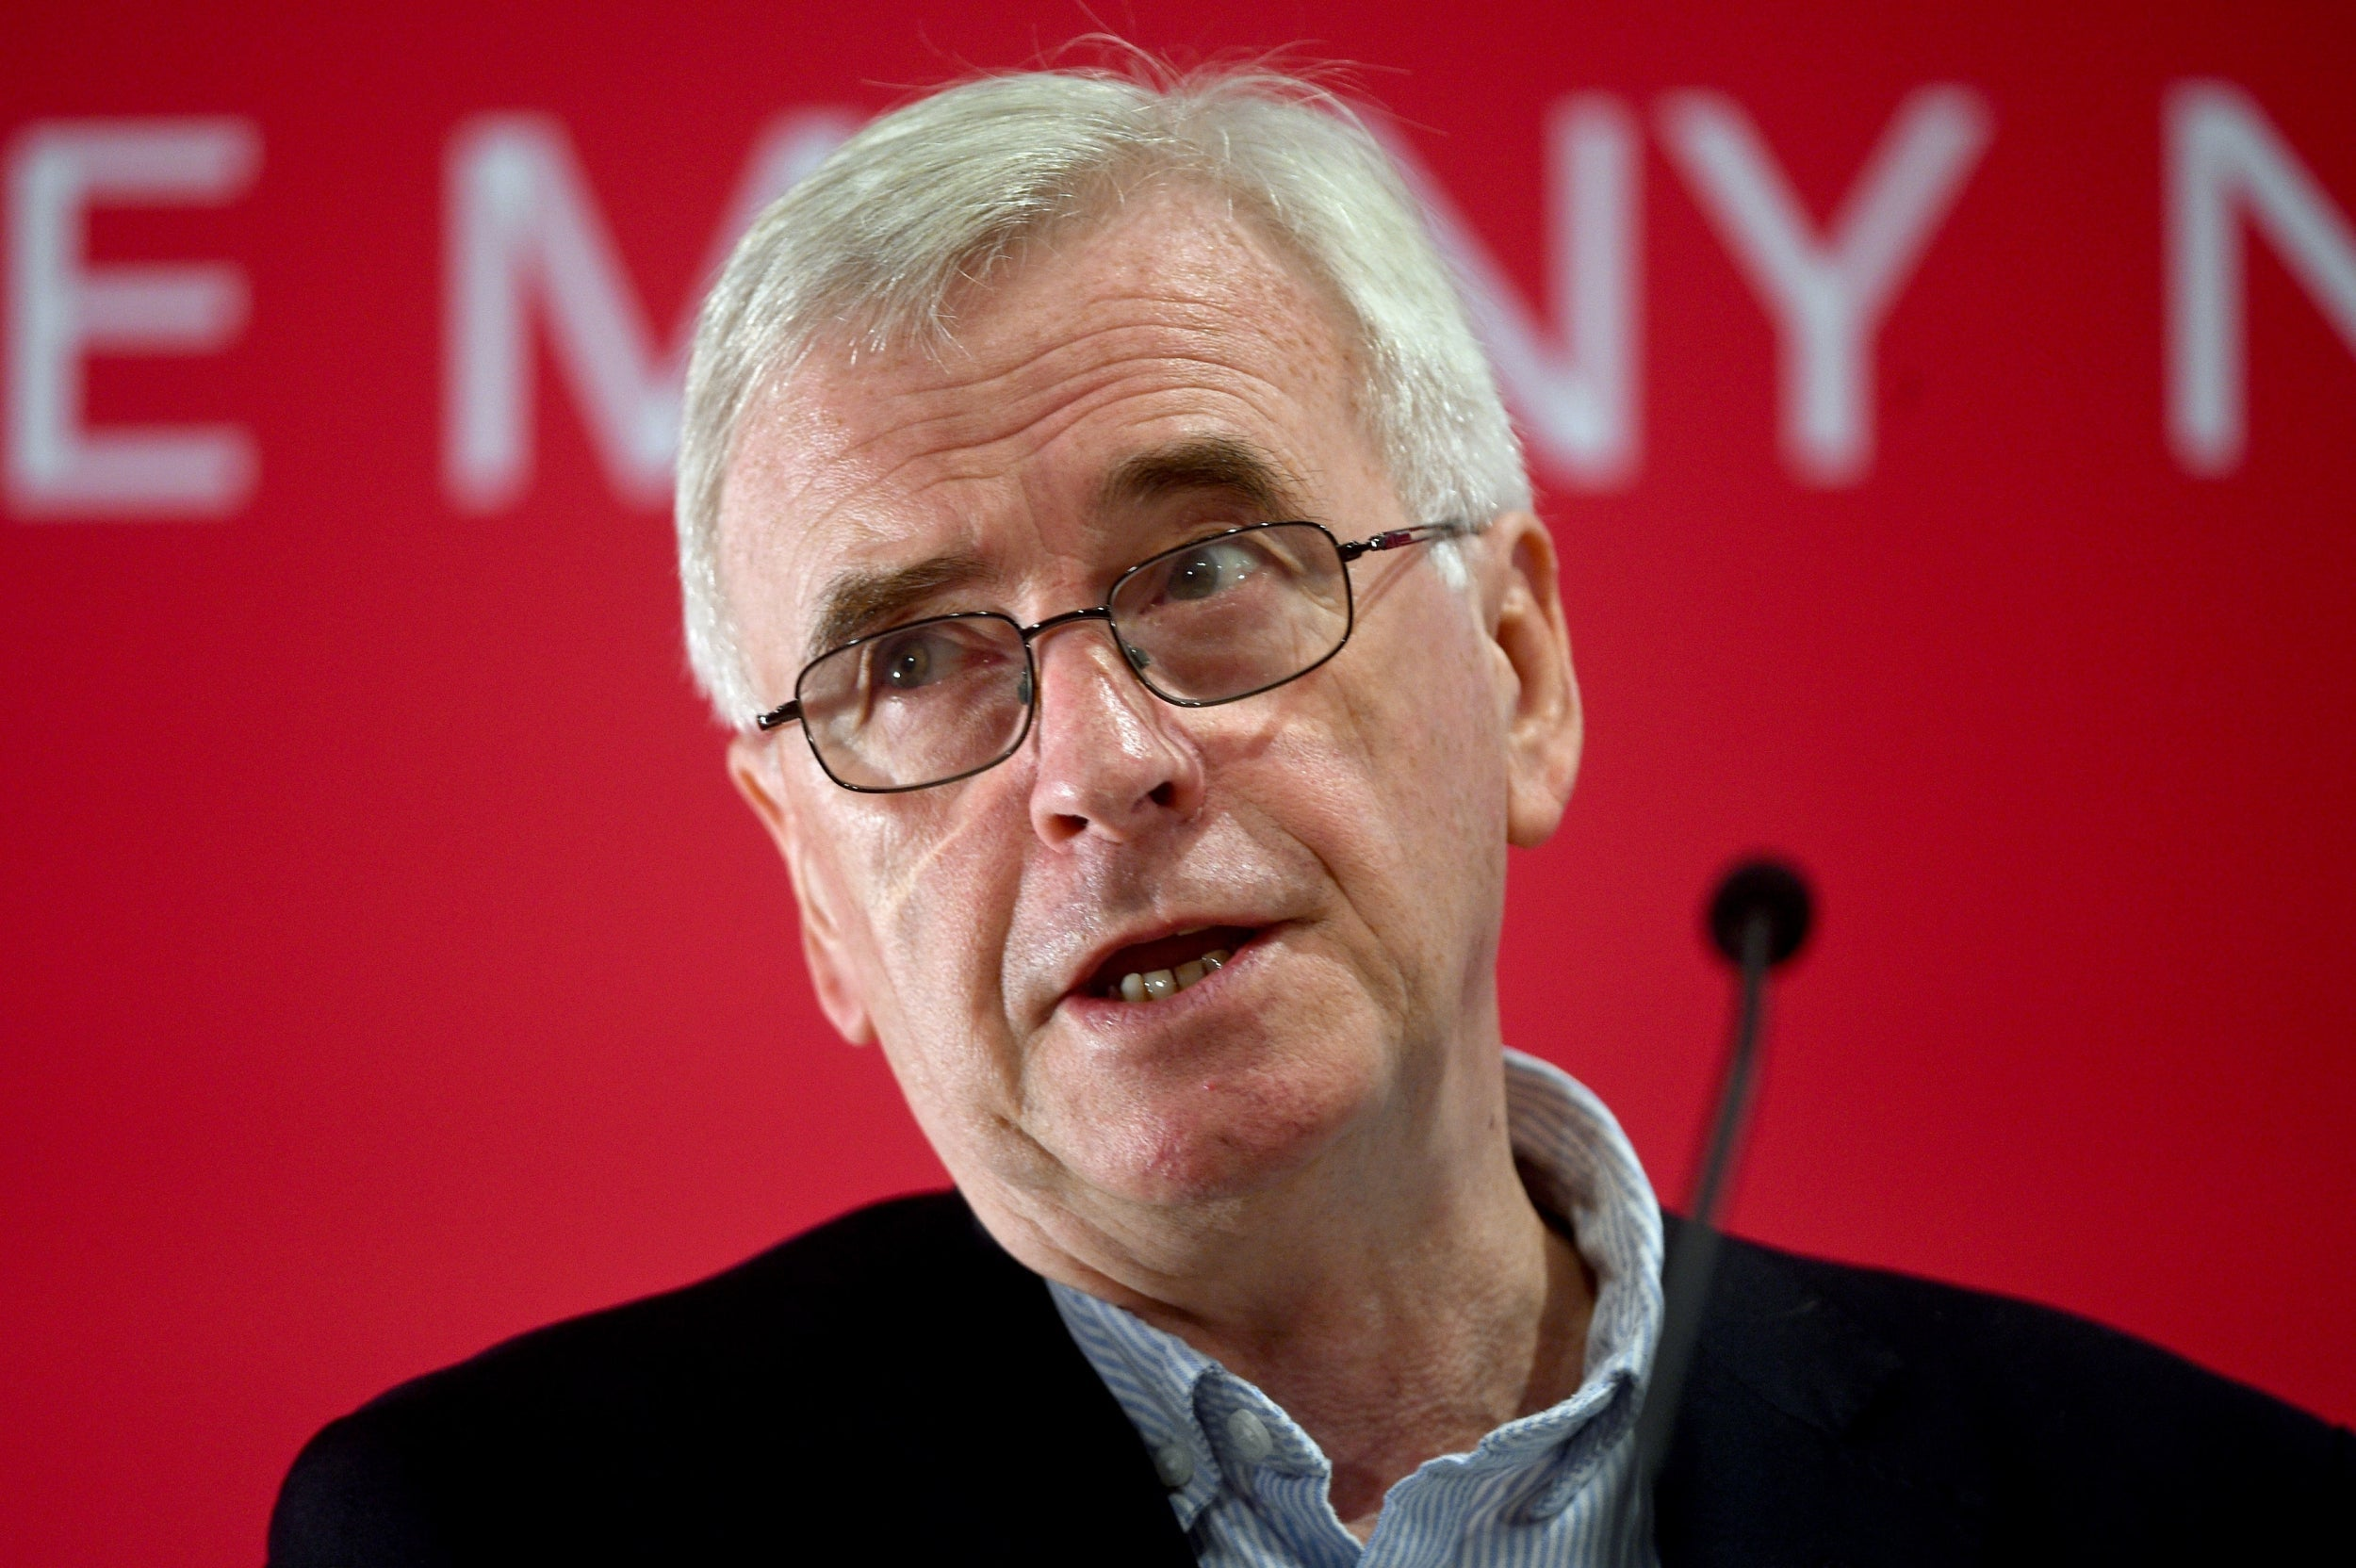 Labour would not block second Scottish independence referendum, John McDonnell says